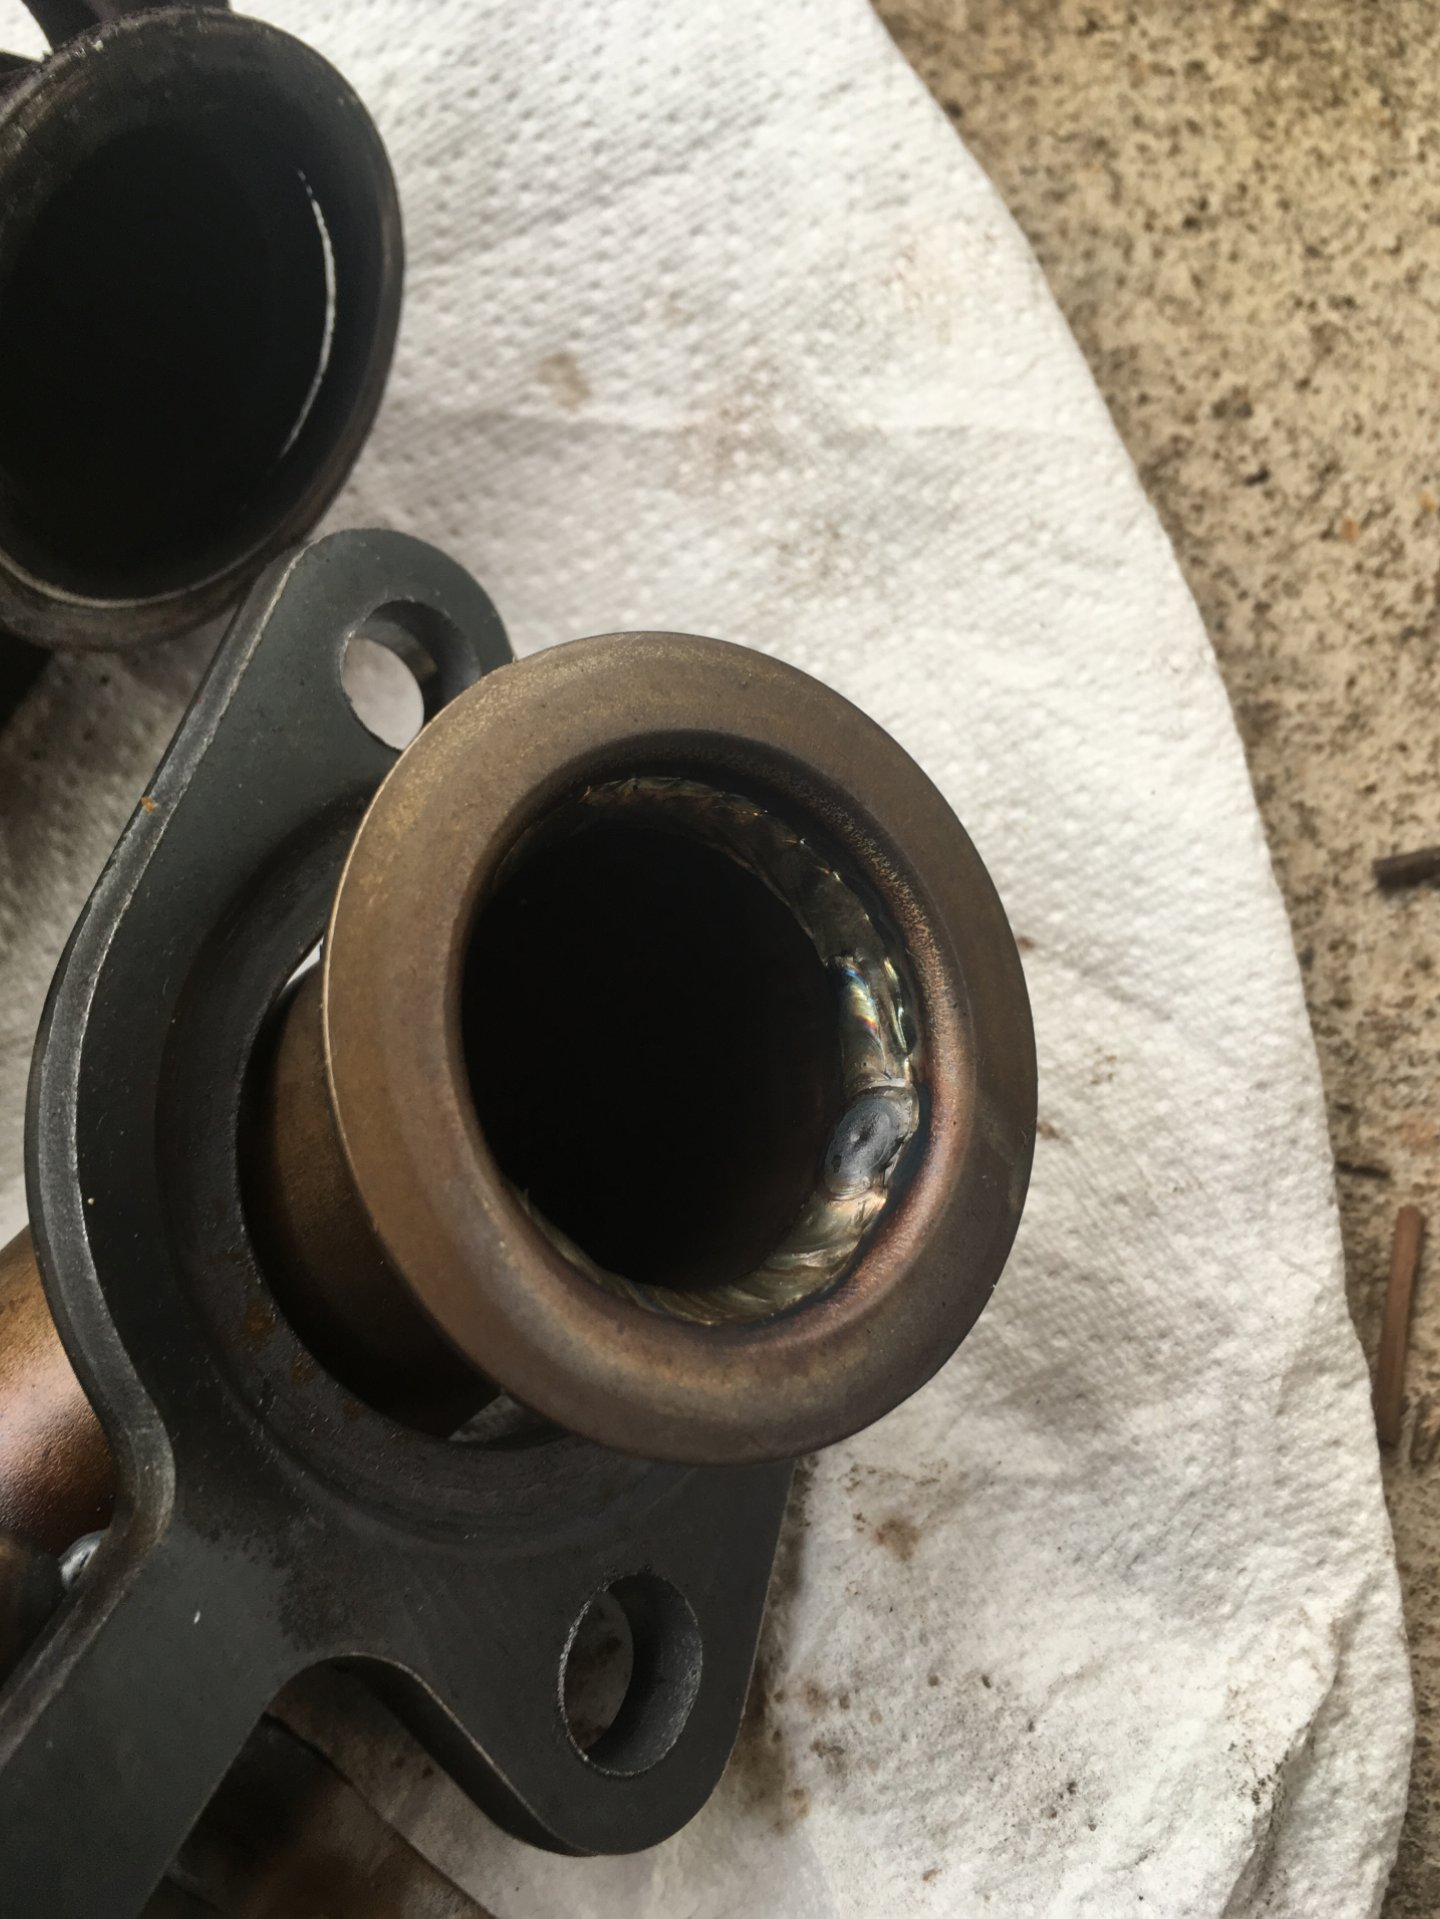 Exhaust manifold replacement, drivers side | IH8MUD Forum